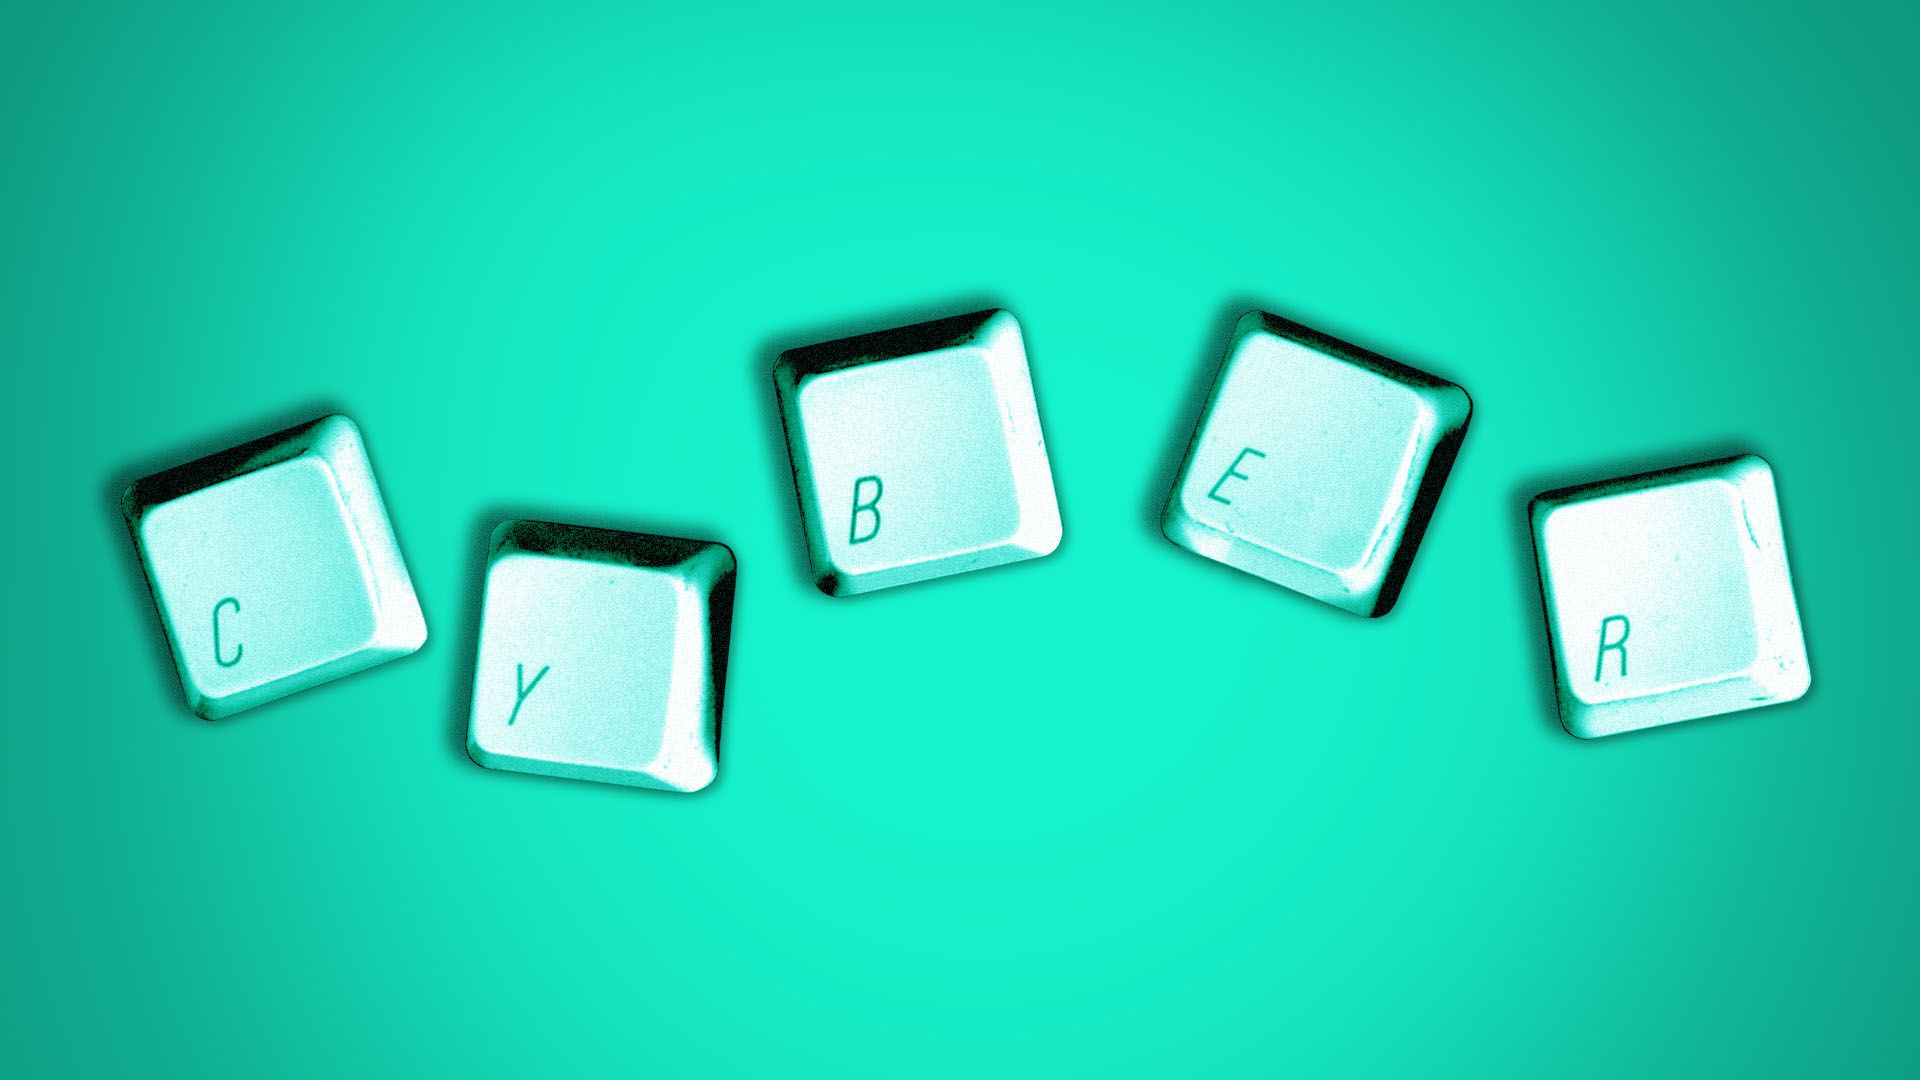 Illustration of detached computer keys spelling out the word cyber